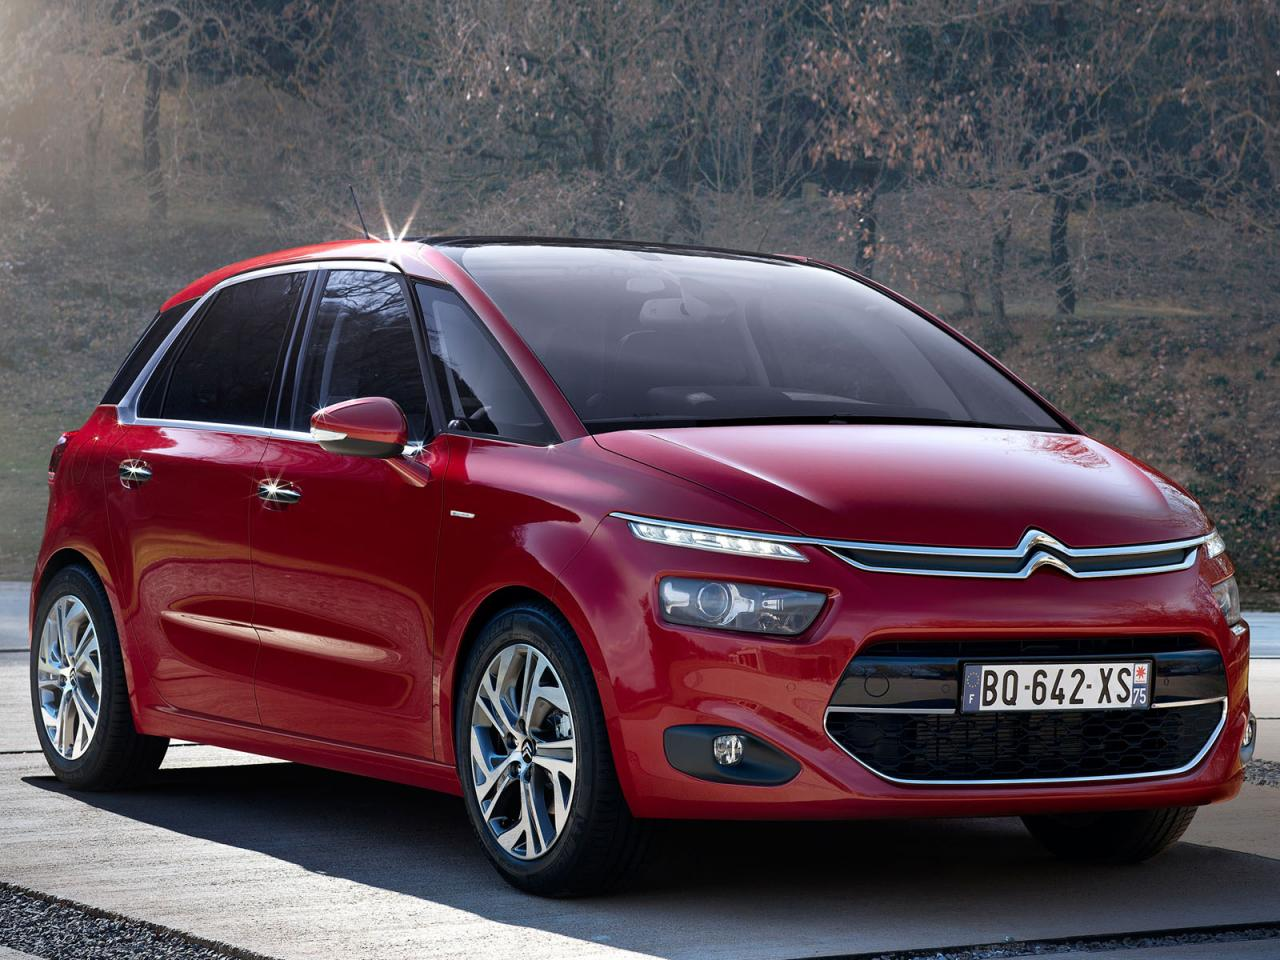 2013 citroen c4 picasso first official photos leaked autoevolution. Black Bedroom Furniture Sets. Home Design Ideas